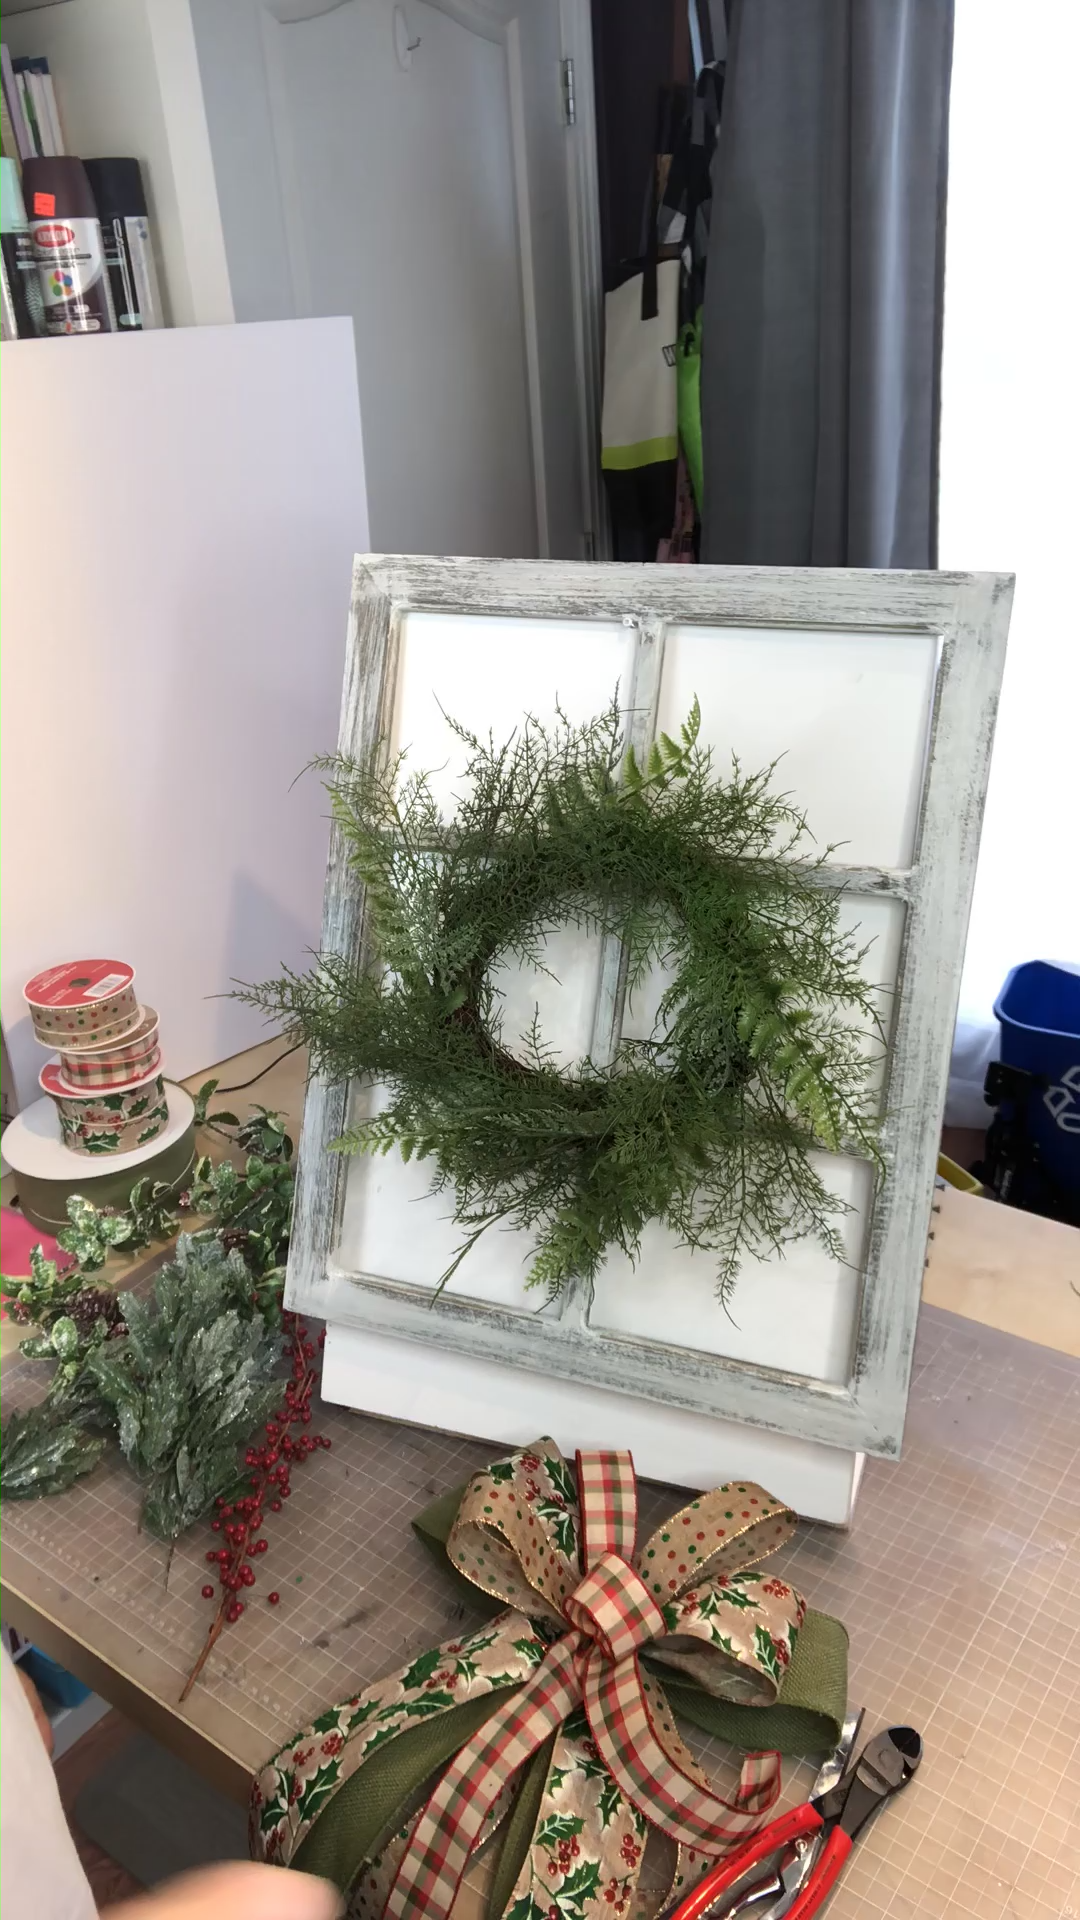 Christmas wreath made on a window frame for something unique this season!